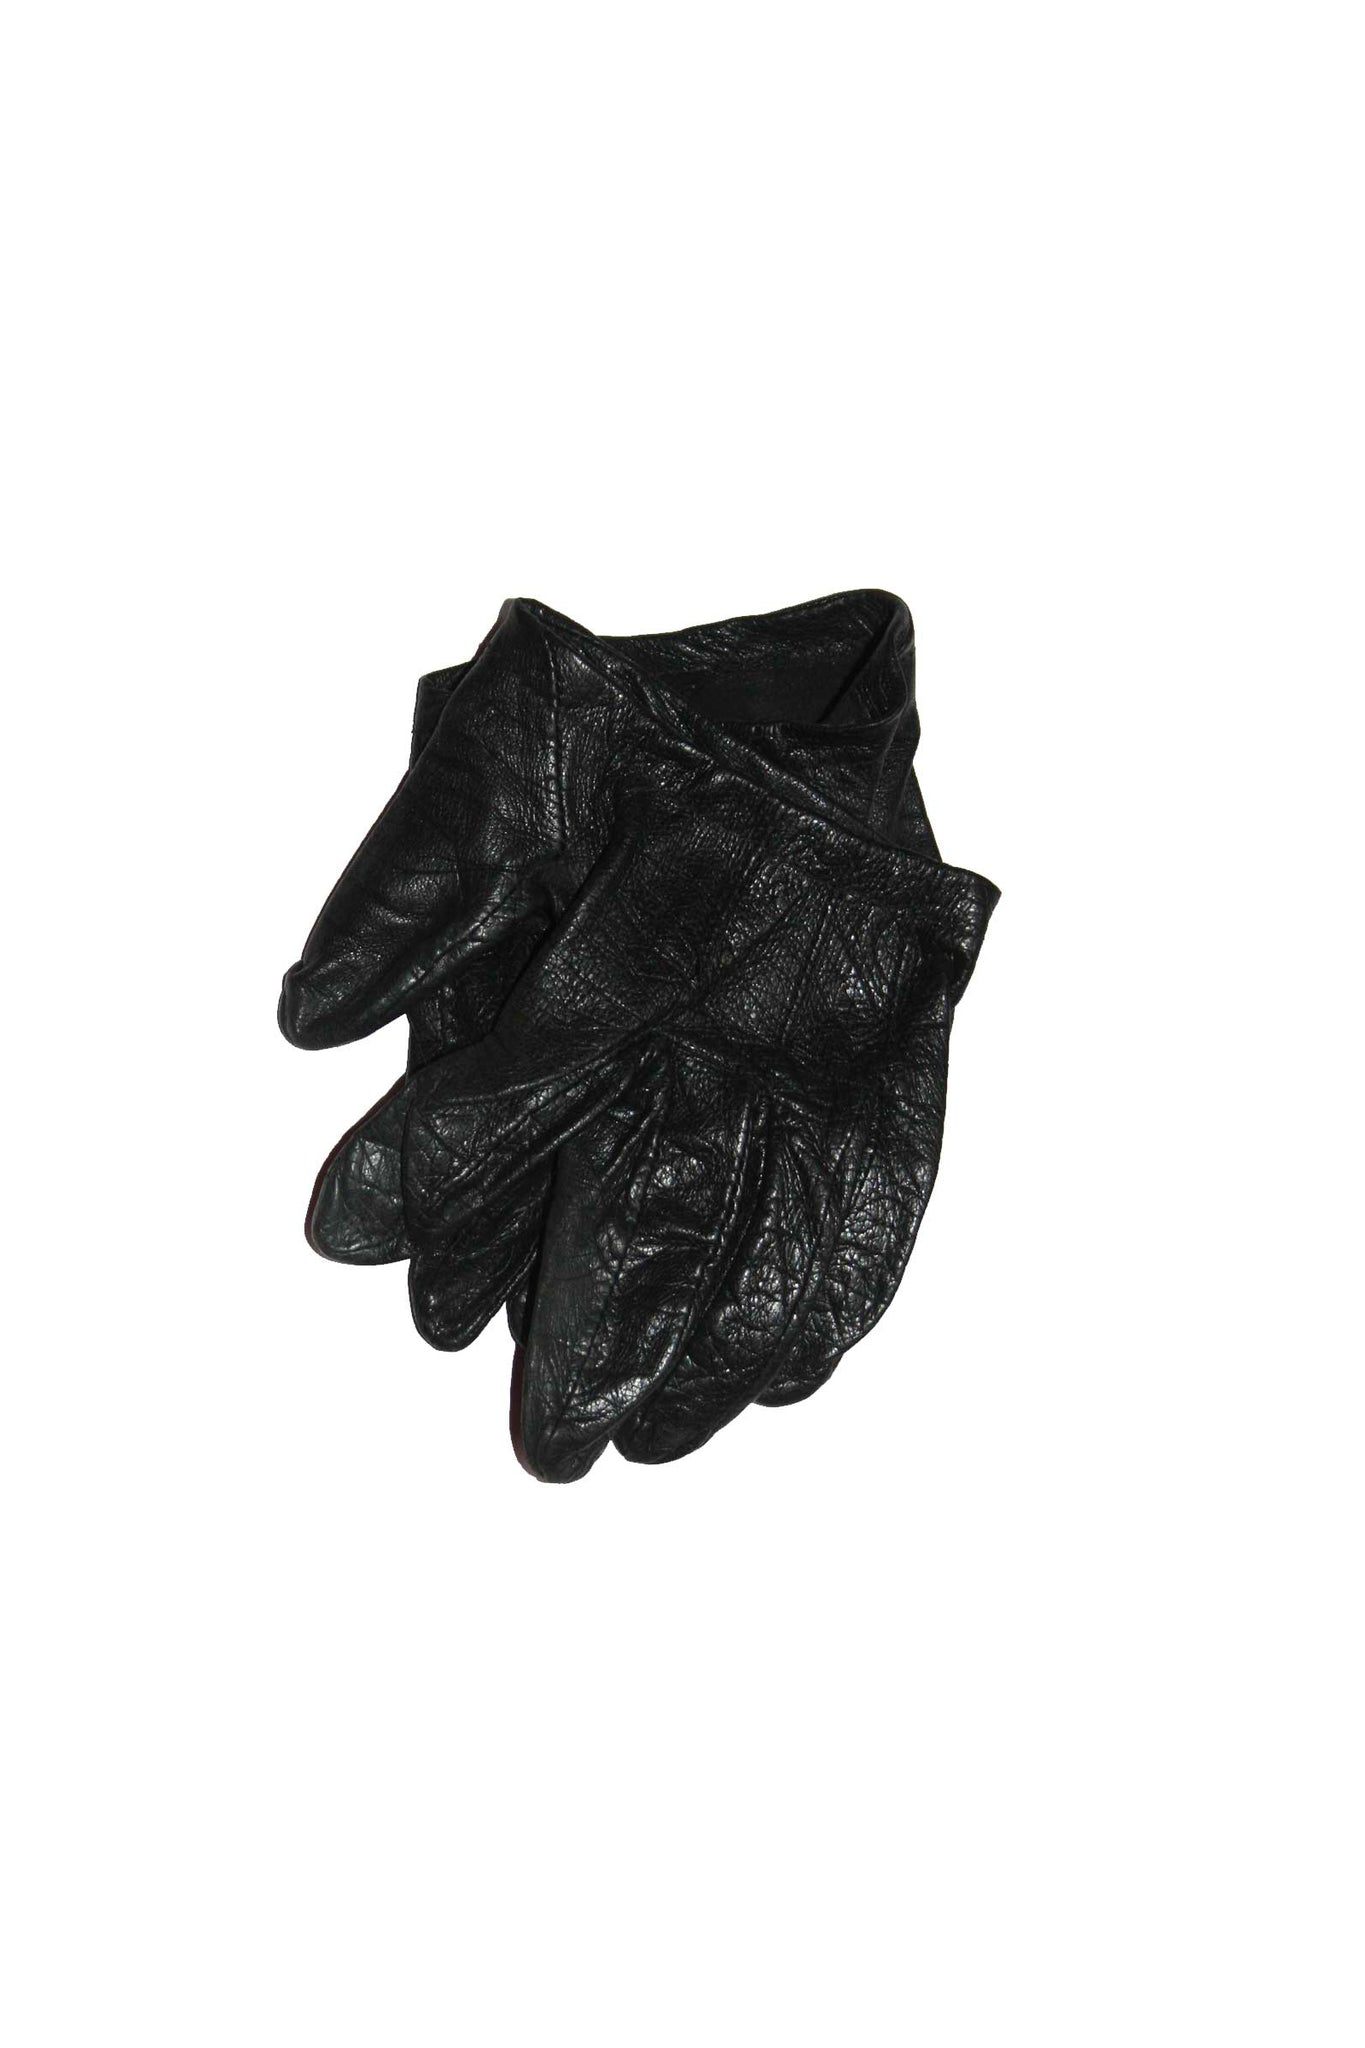 Vintage leather black gloves - SoLovesVintage